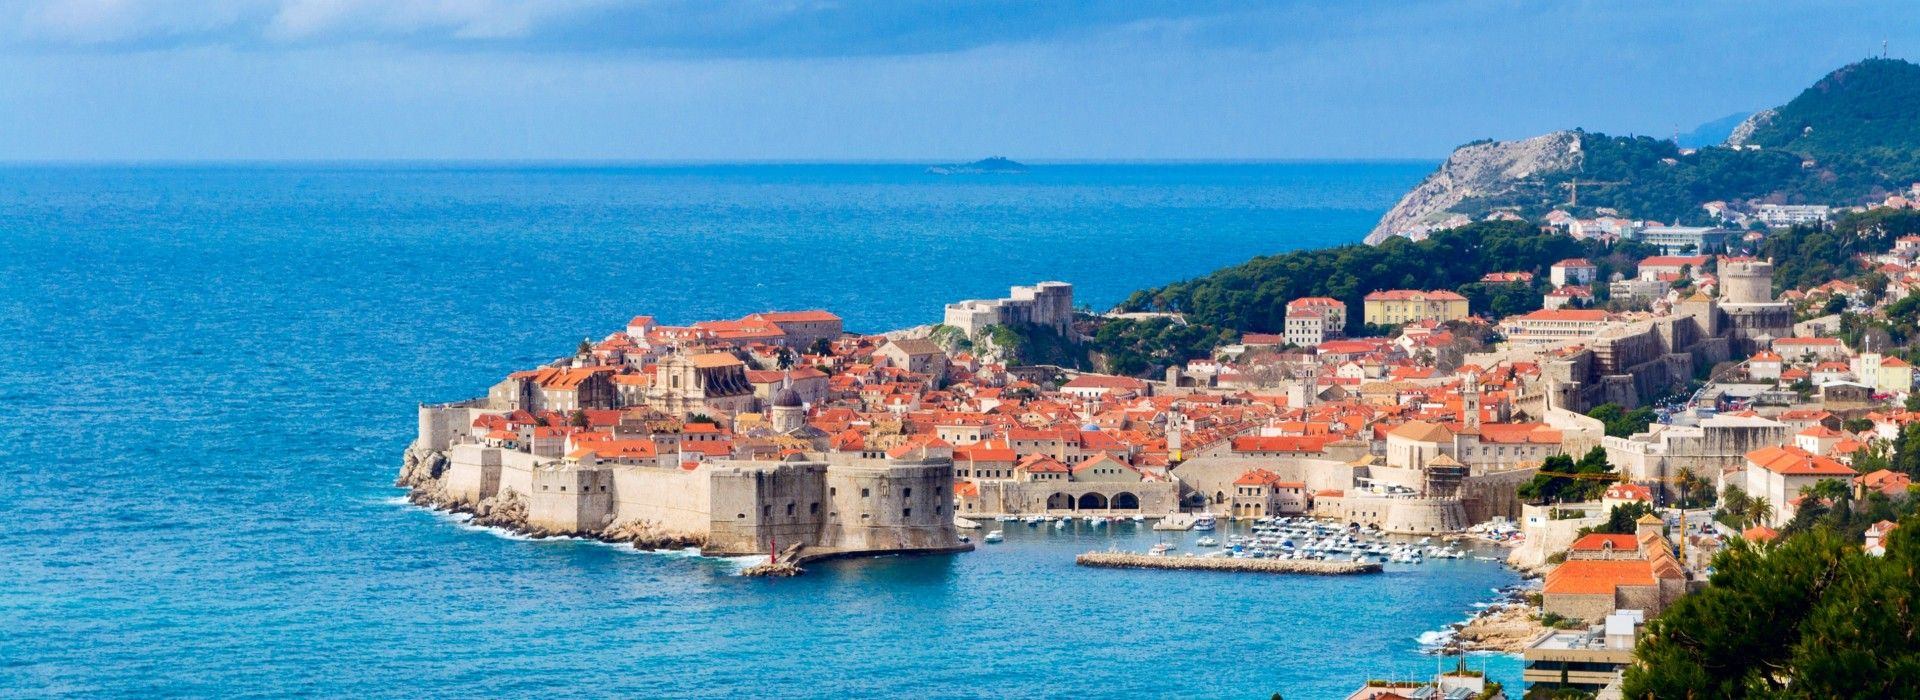 Beach, romance, getaways and relaxation Tours in Croatia